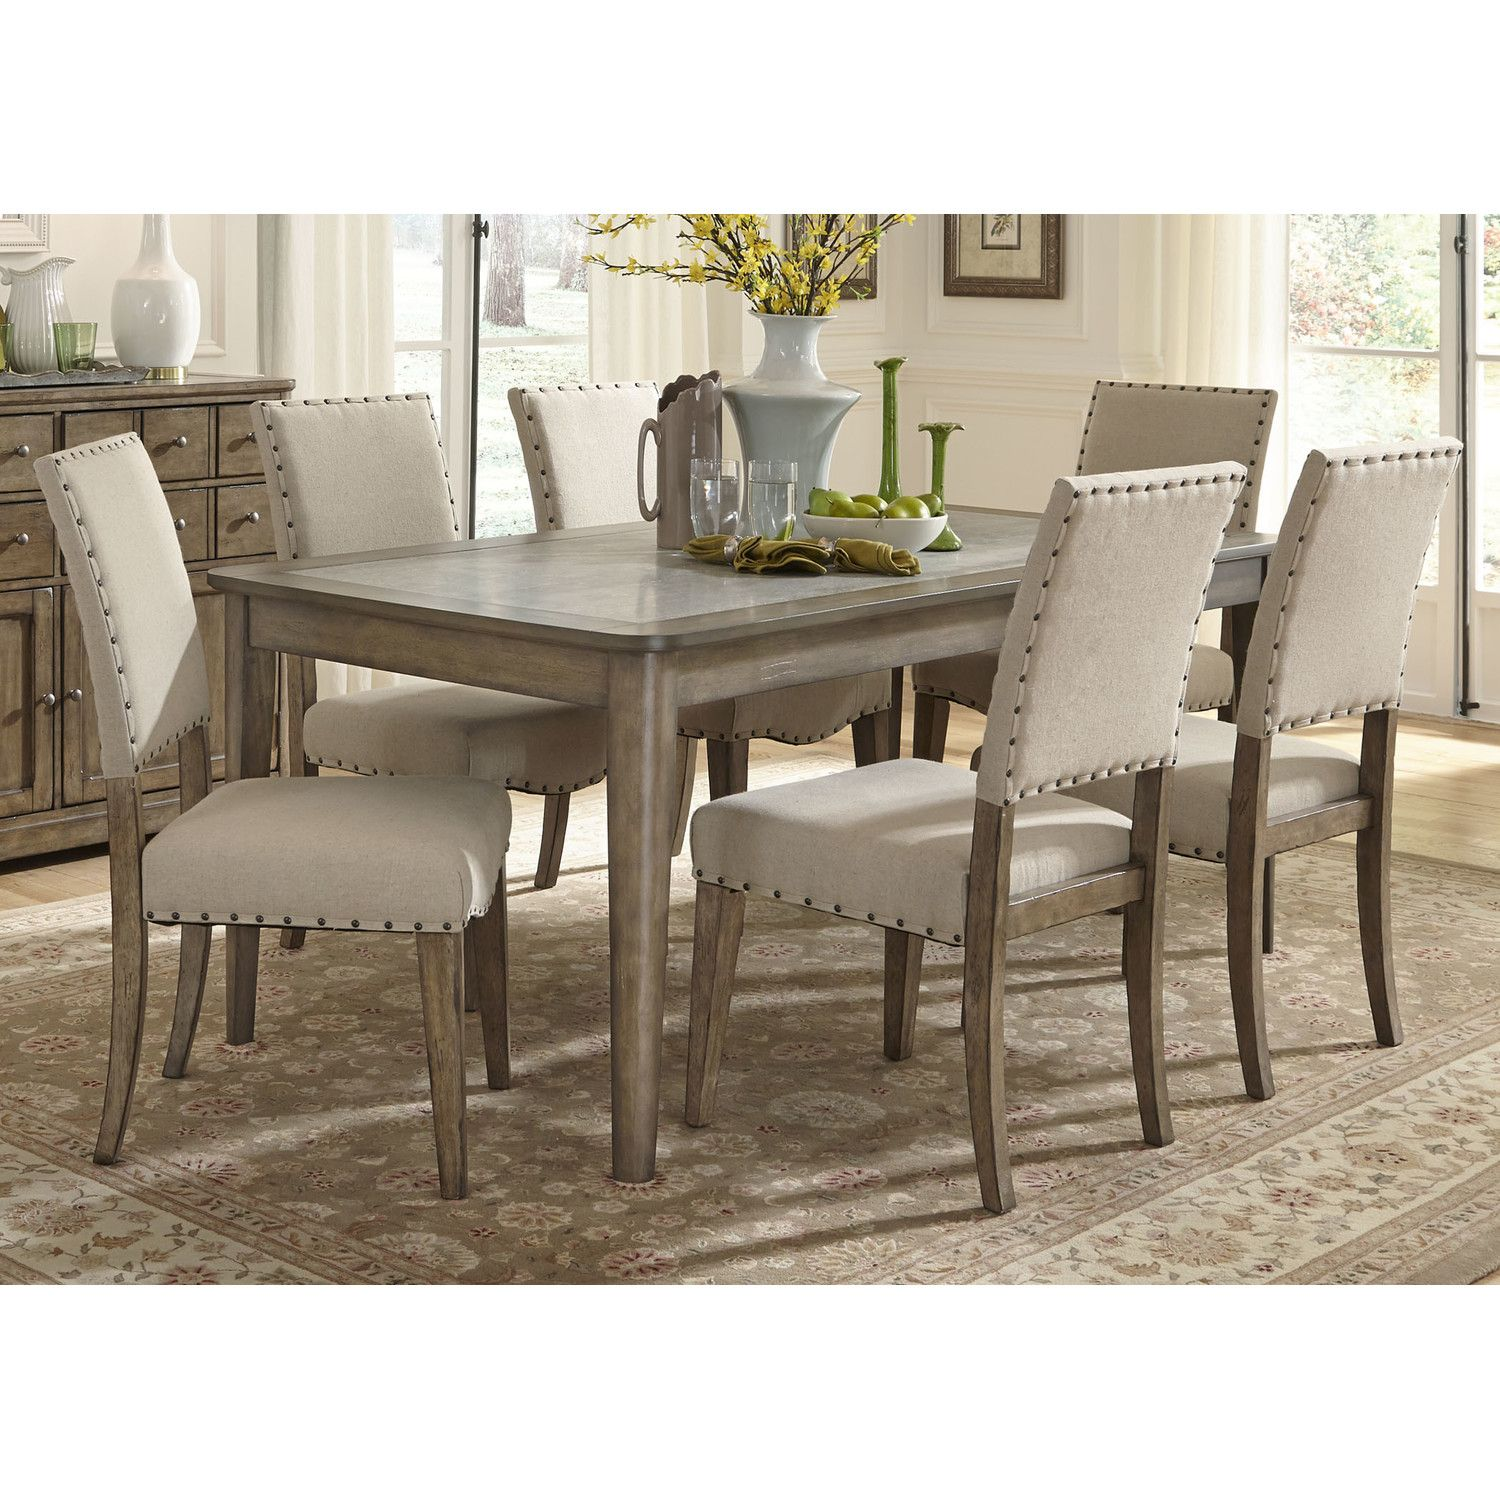 Set De Cuisine Moderne Liberty Furniture 7 Piece Dining Set Houses Rooms And Decor